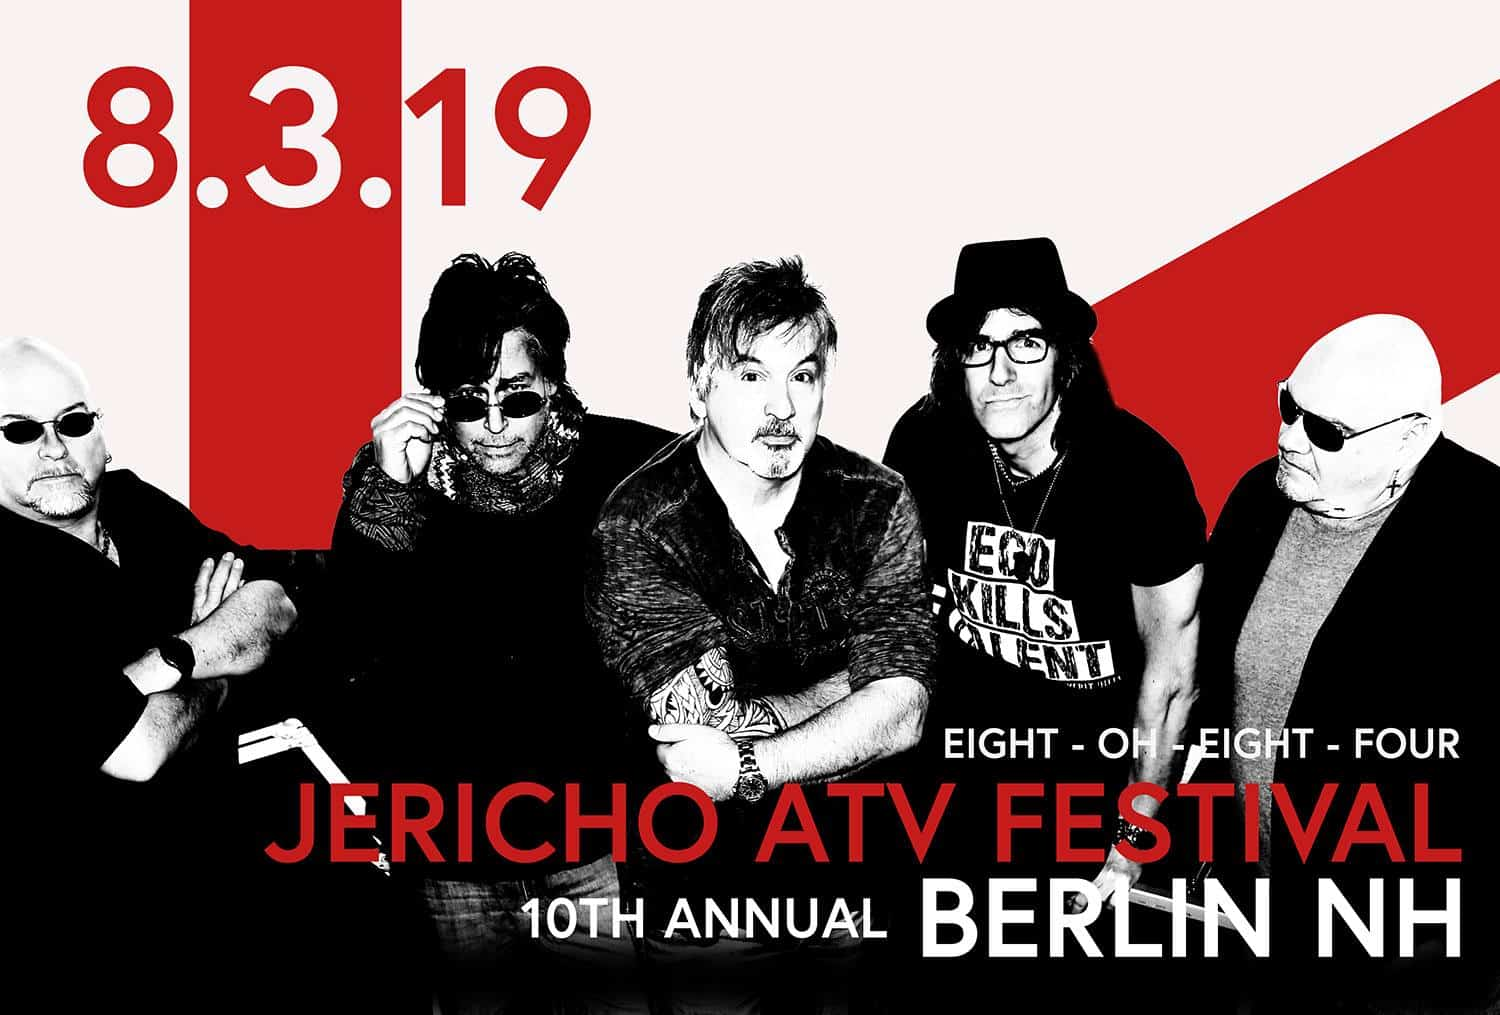 This year's Jericho ATV Festival features live music by 8084